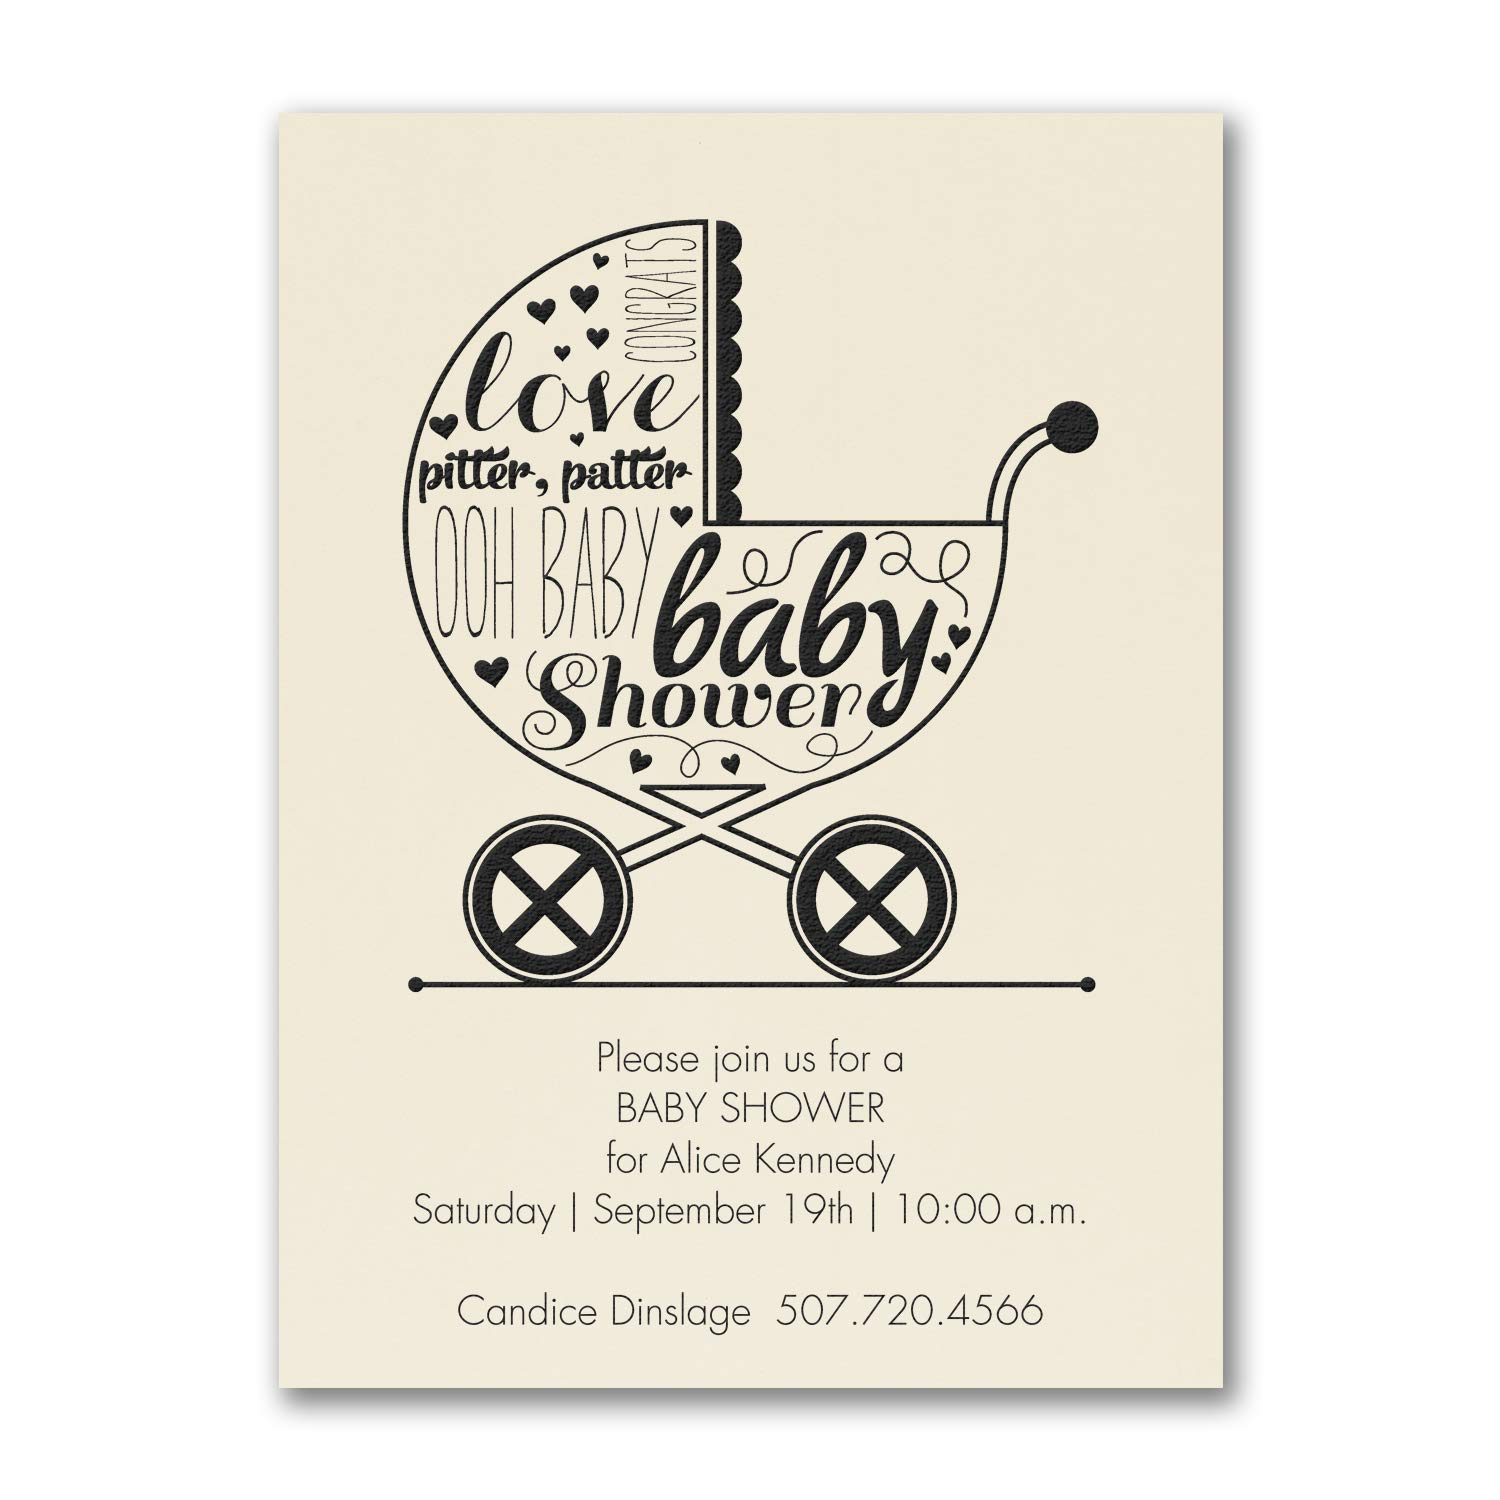 775pk Baby Buggy Shower - Baby Shower Invitation - Ecru-Baby Shower Invitations